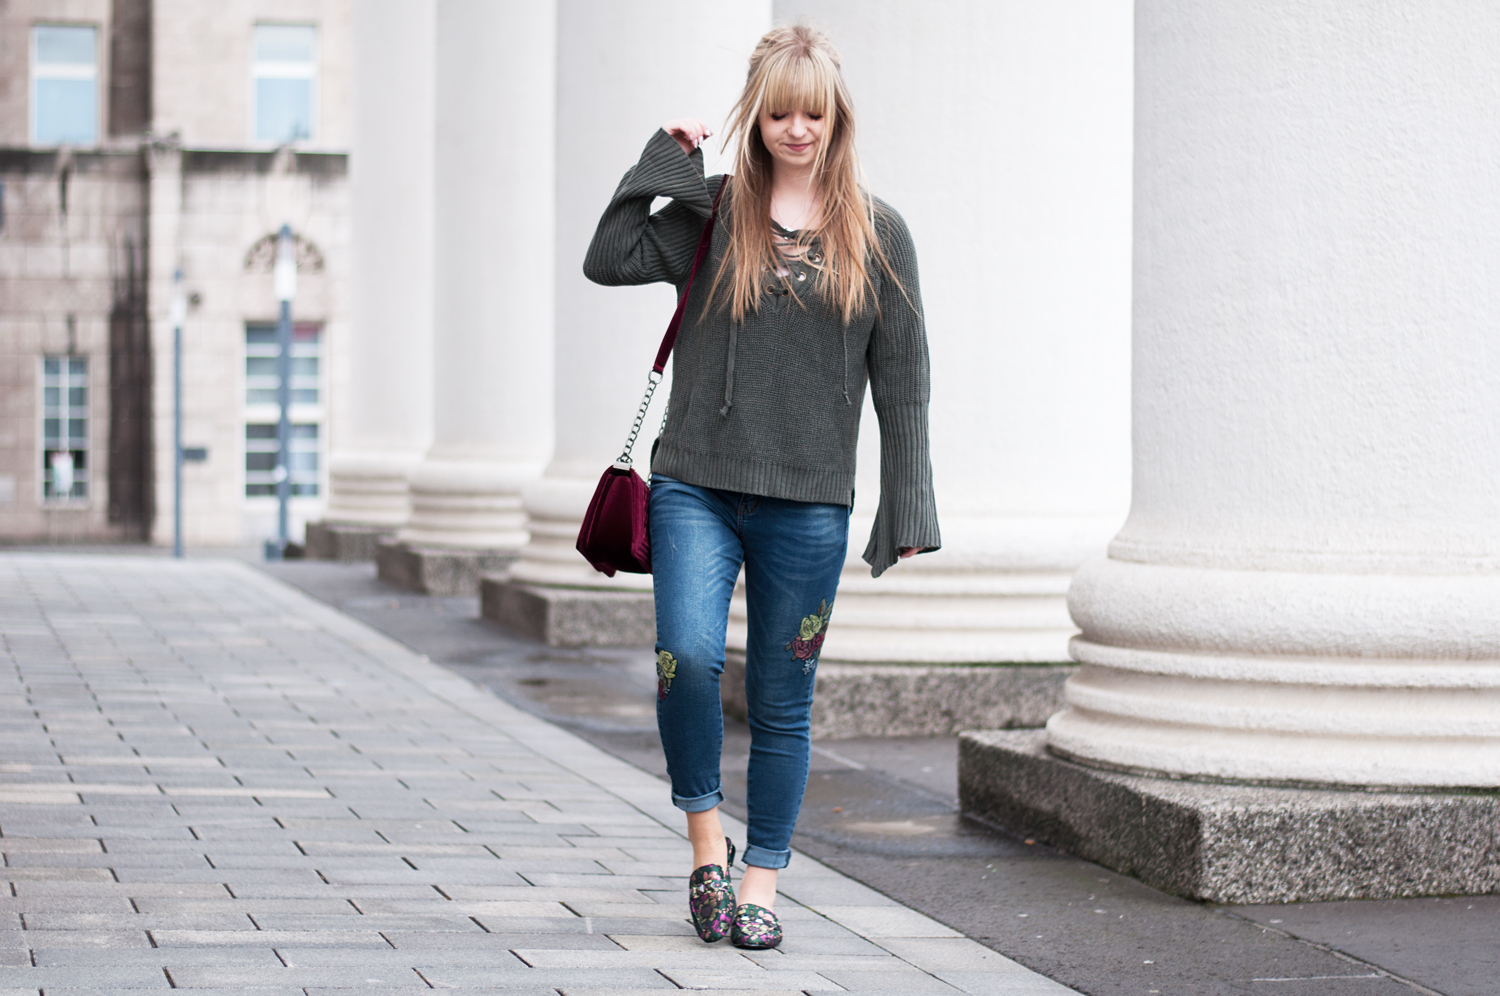 OUTFIT: FLORAL SLIPPER AND EMBROIDERED JEANS